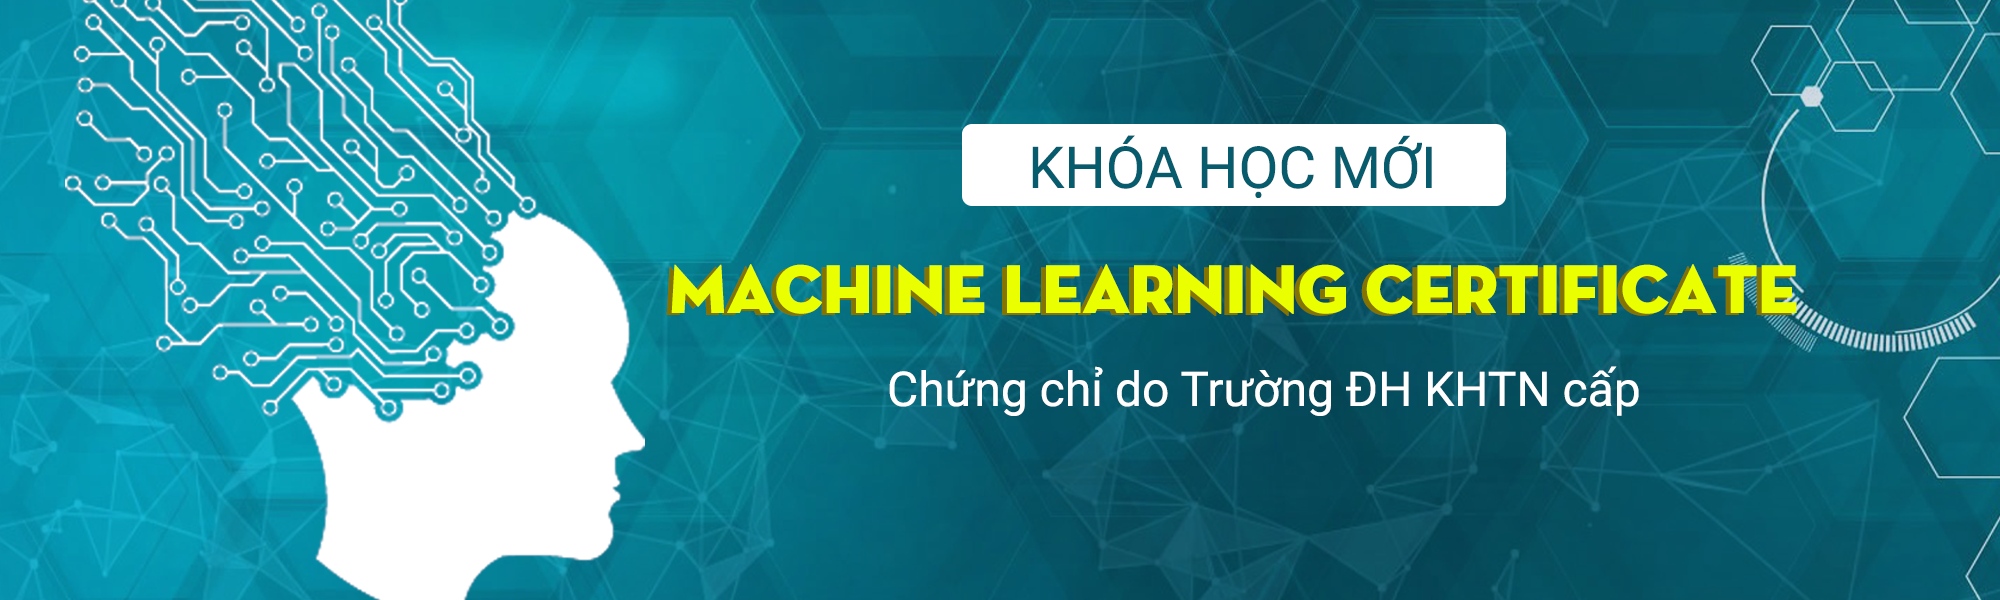 Machine Learning Certificate